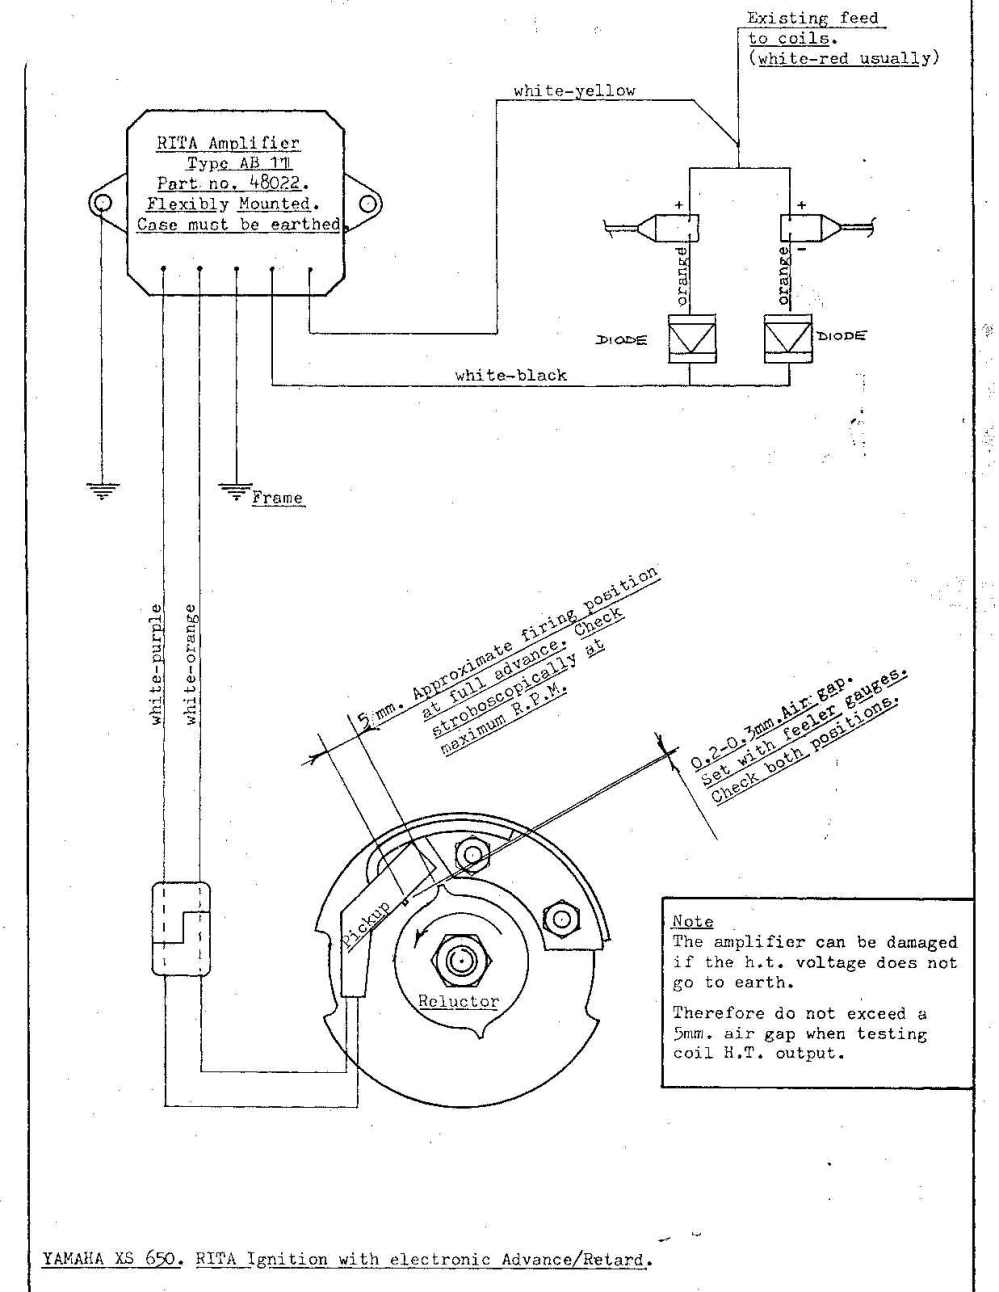 medium resolution of diagram for installing the lr130 rita ignition yamaha 650 twin 142k jpg file